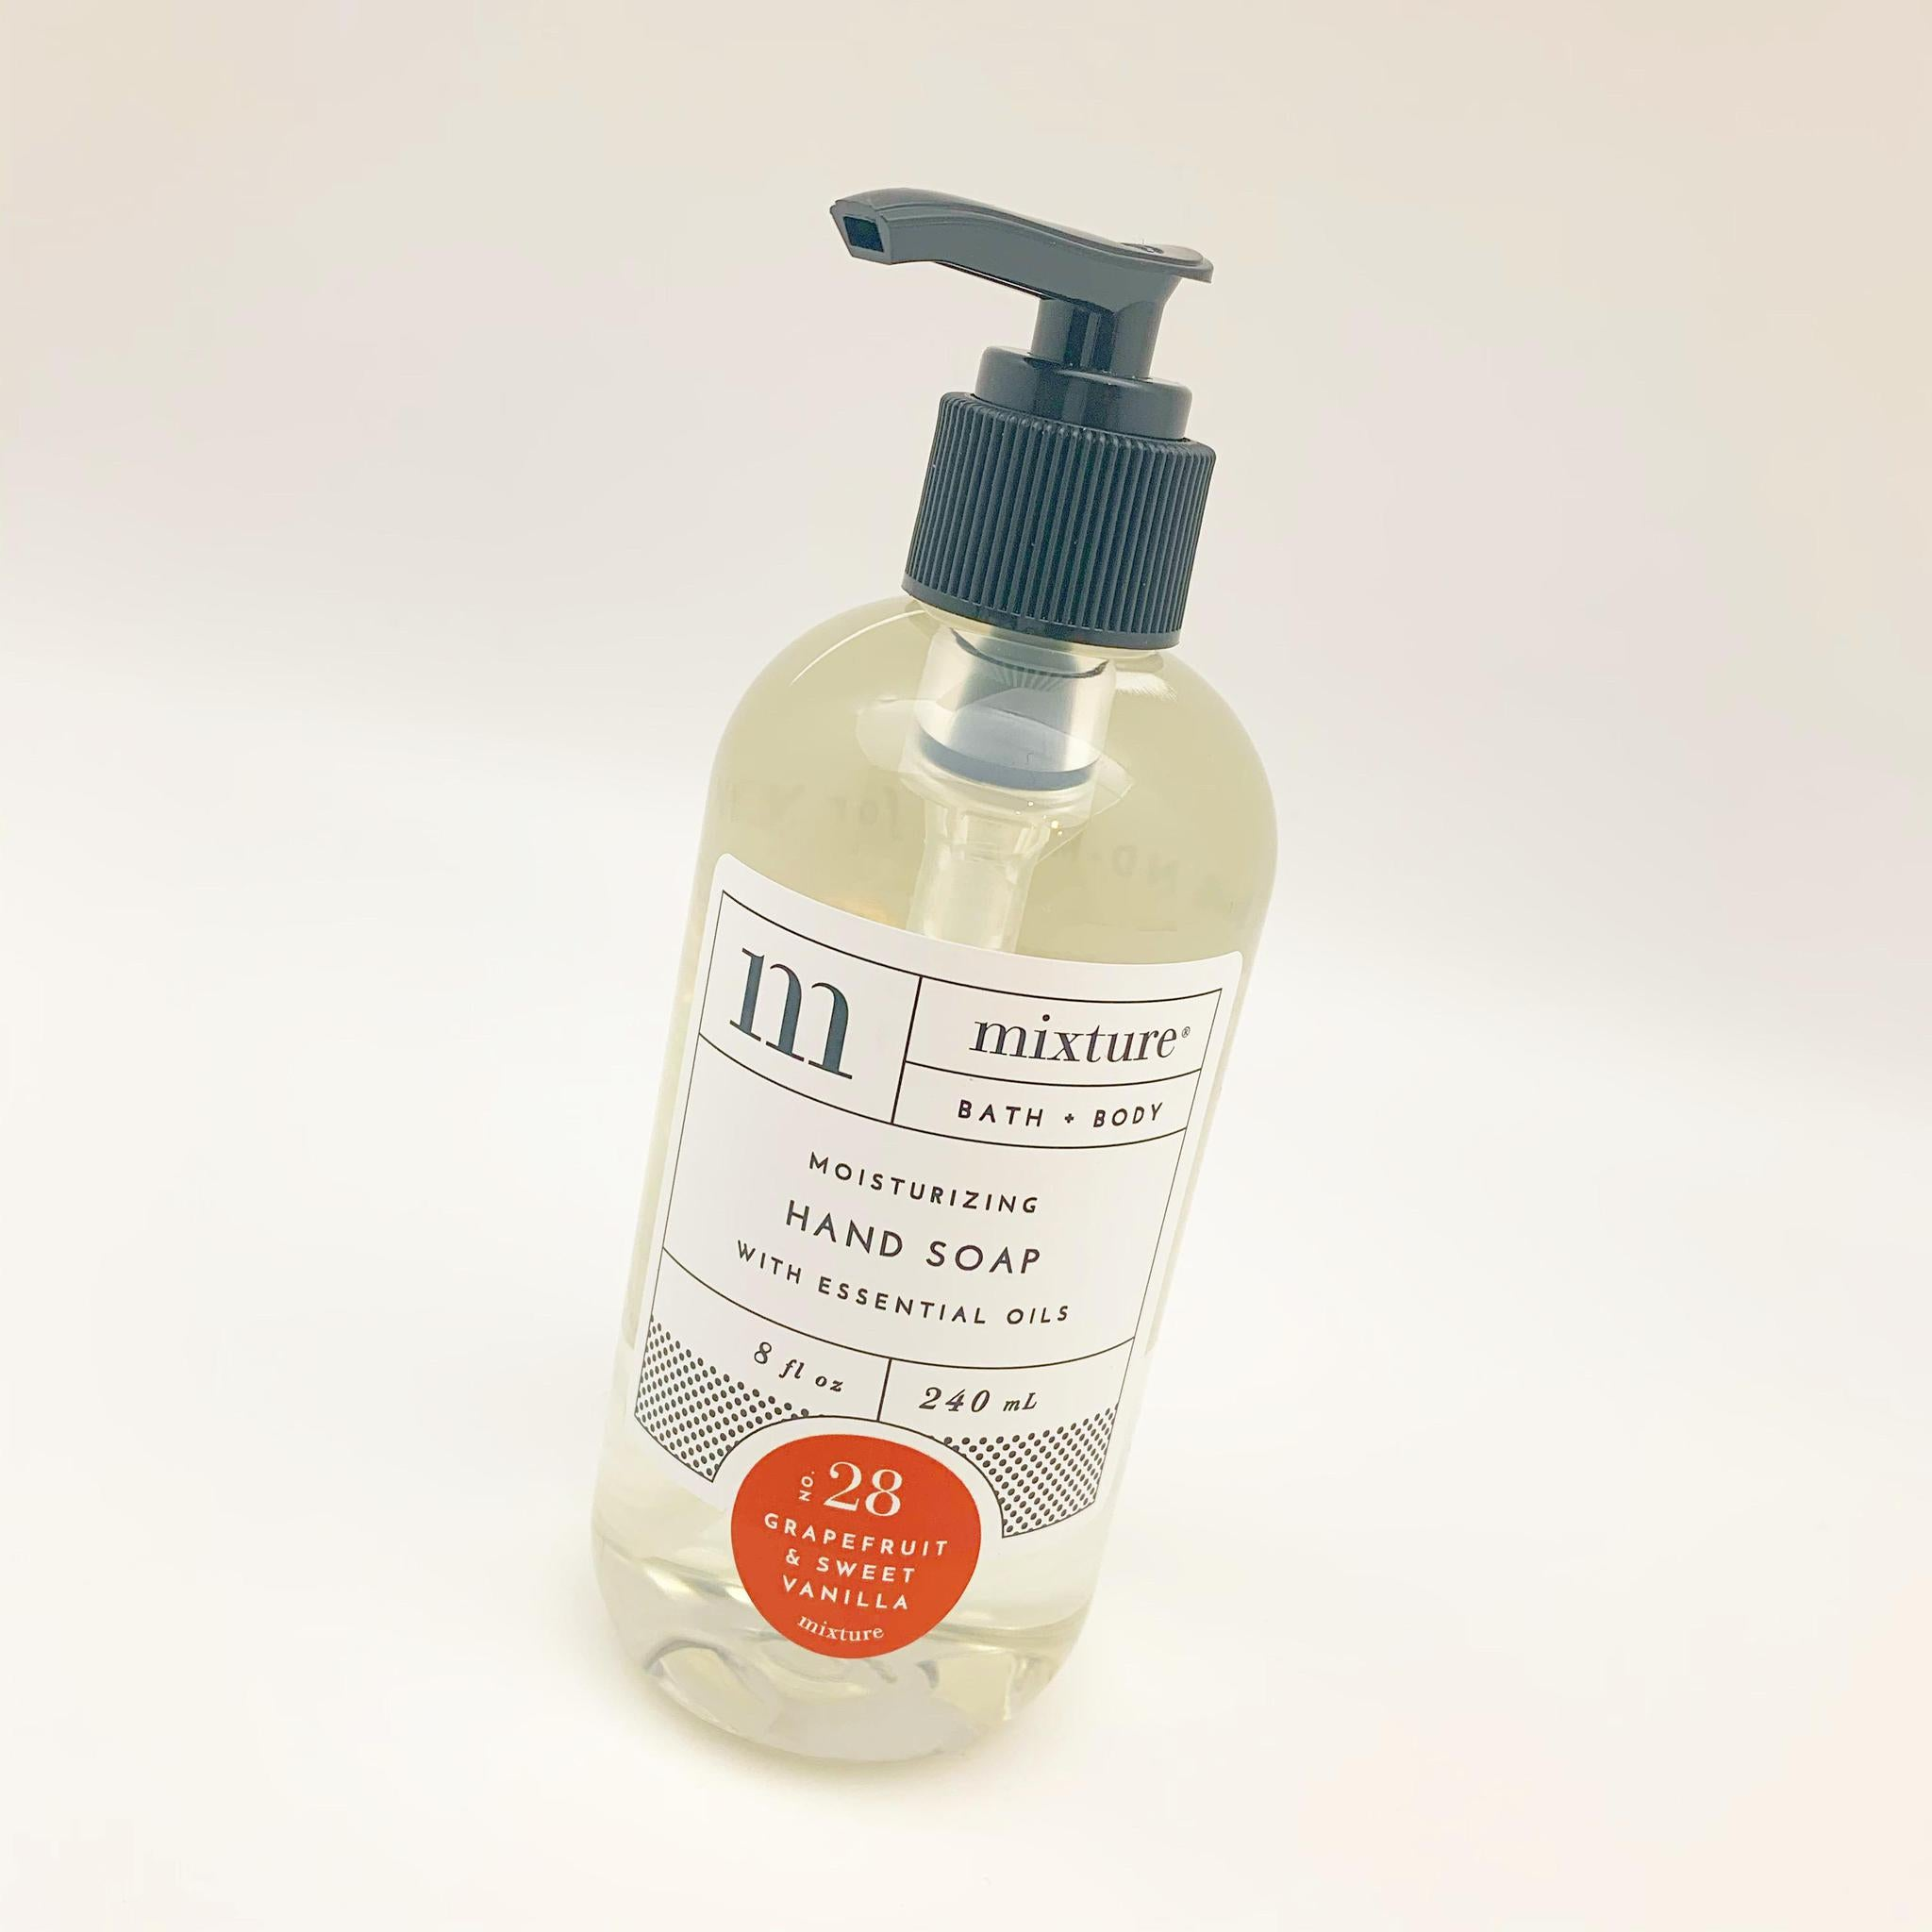 Hand Soap - Grapefruit & Sweet Vanilla - 8oz